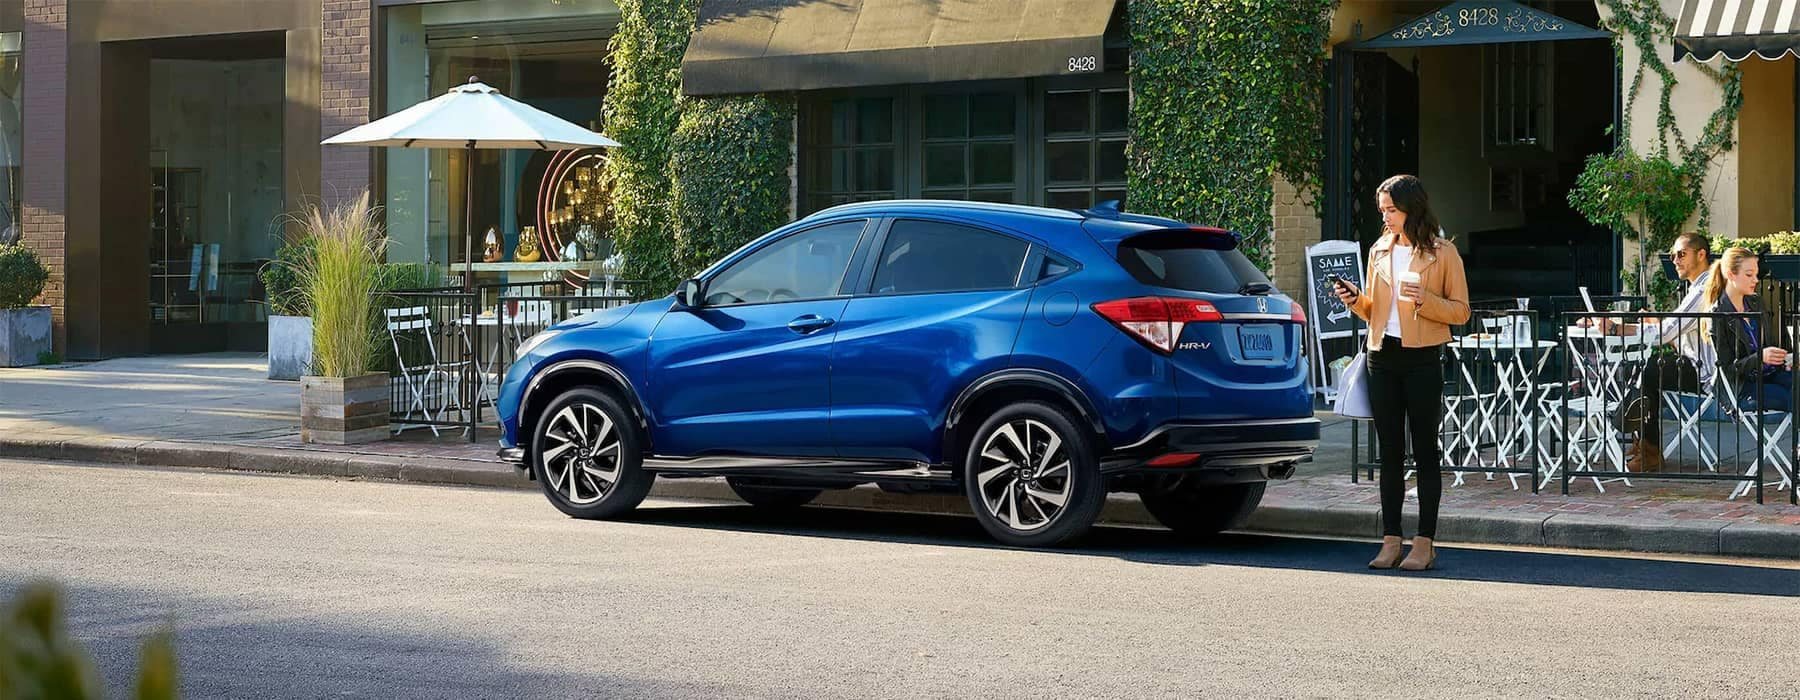 Honda HR-V Parked on Side of Road